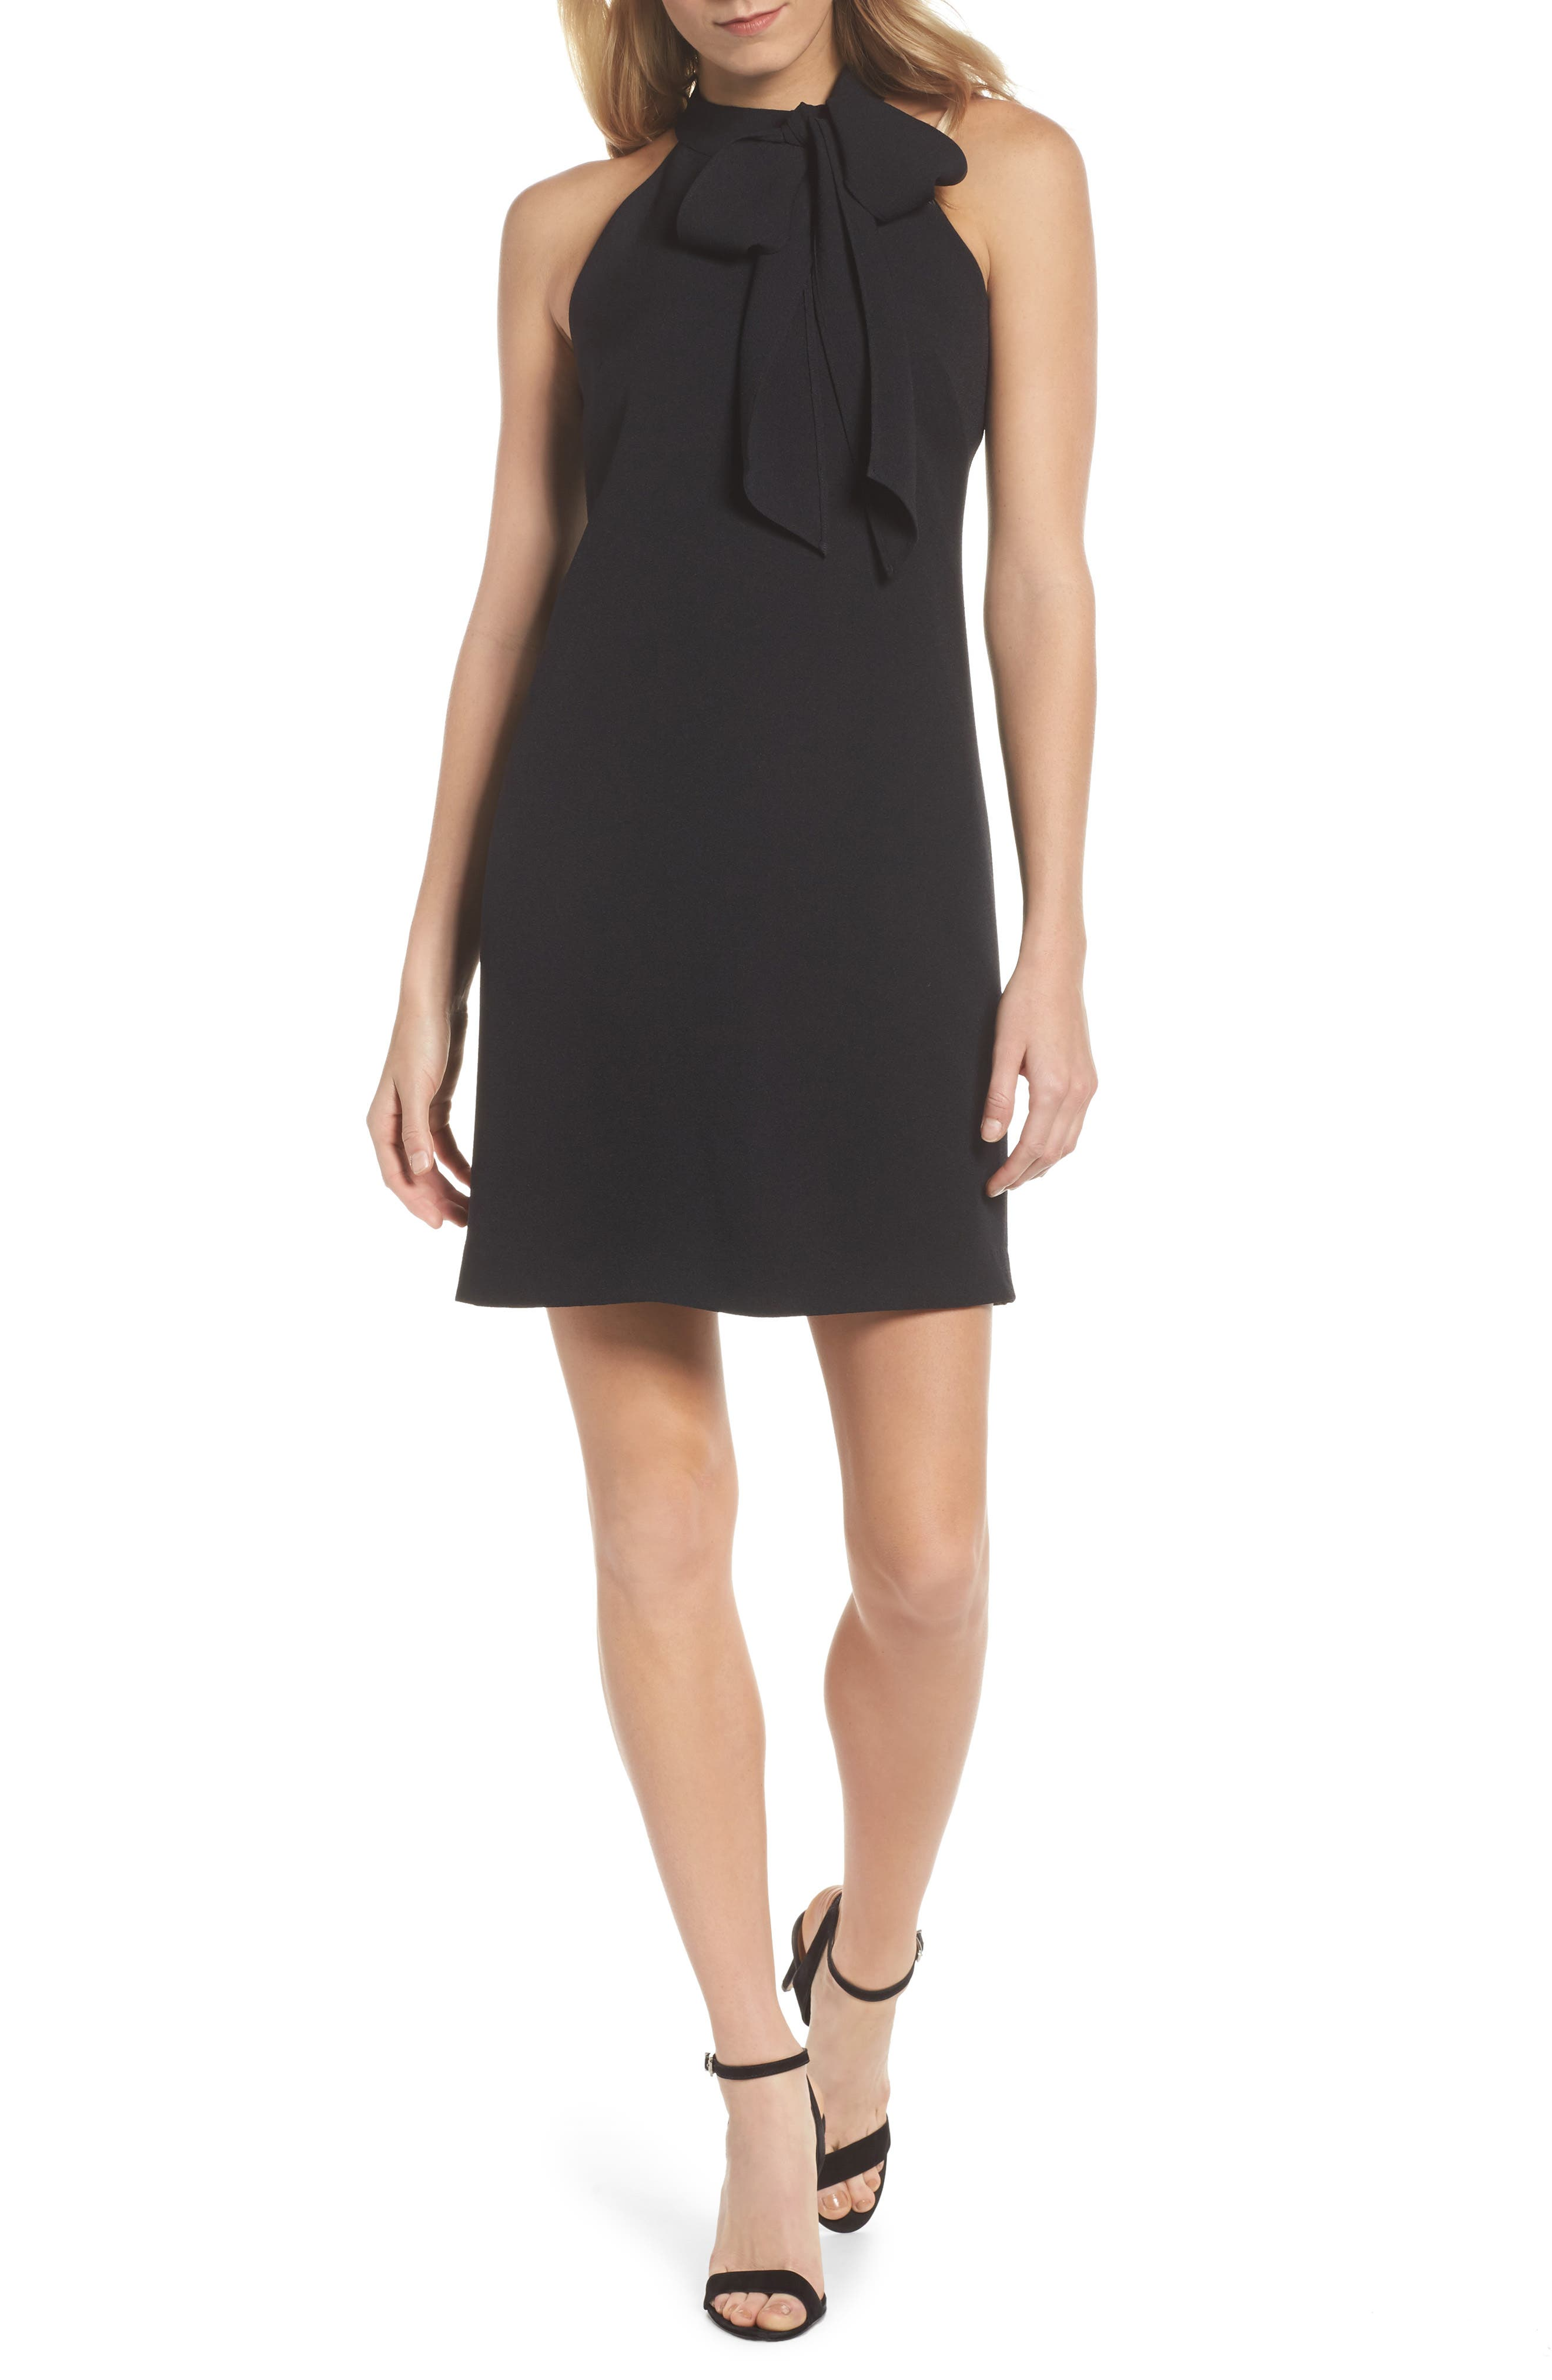 Vince Camuto Halter Tie Neck A-Line Dress, Black